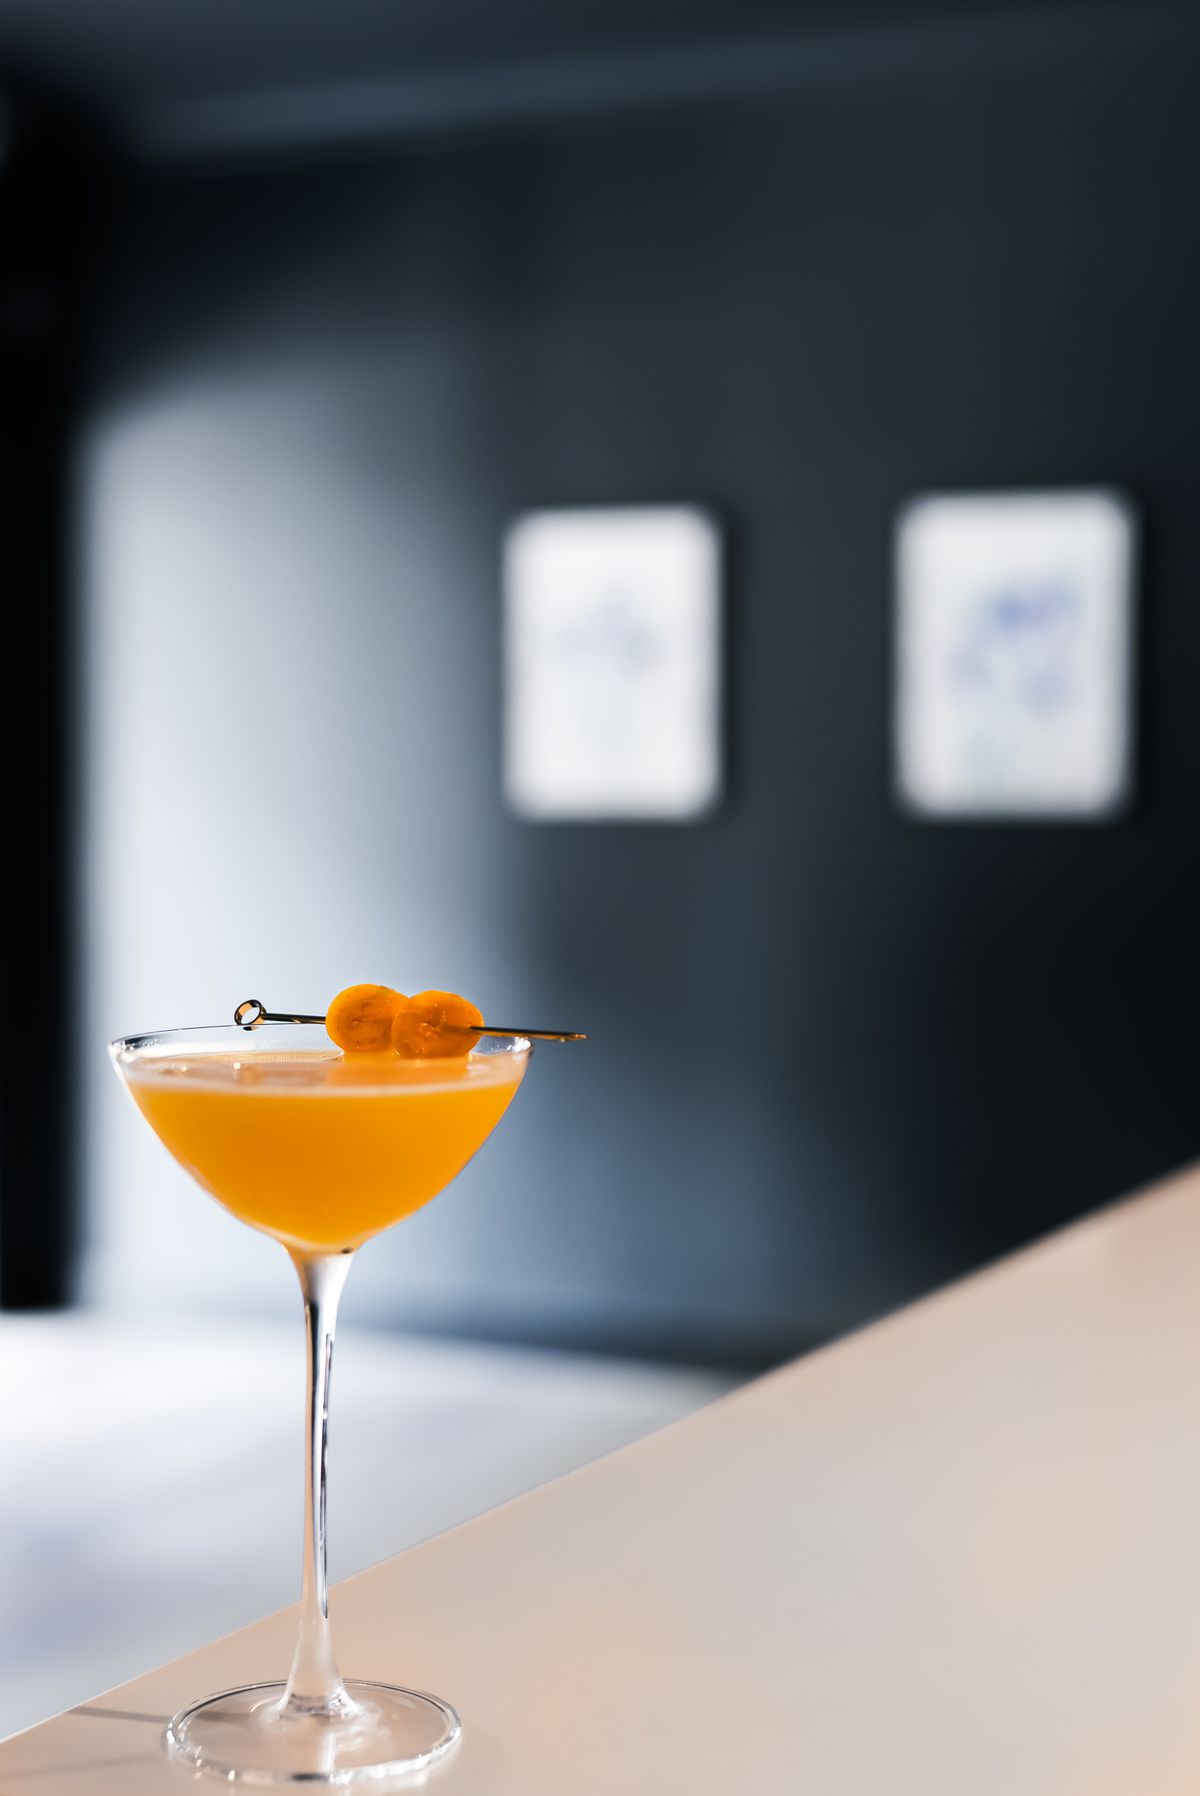 An orange cocktail in a rounded martini glass with a skewer of garnish.